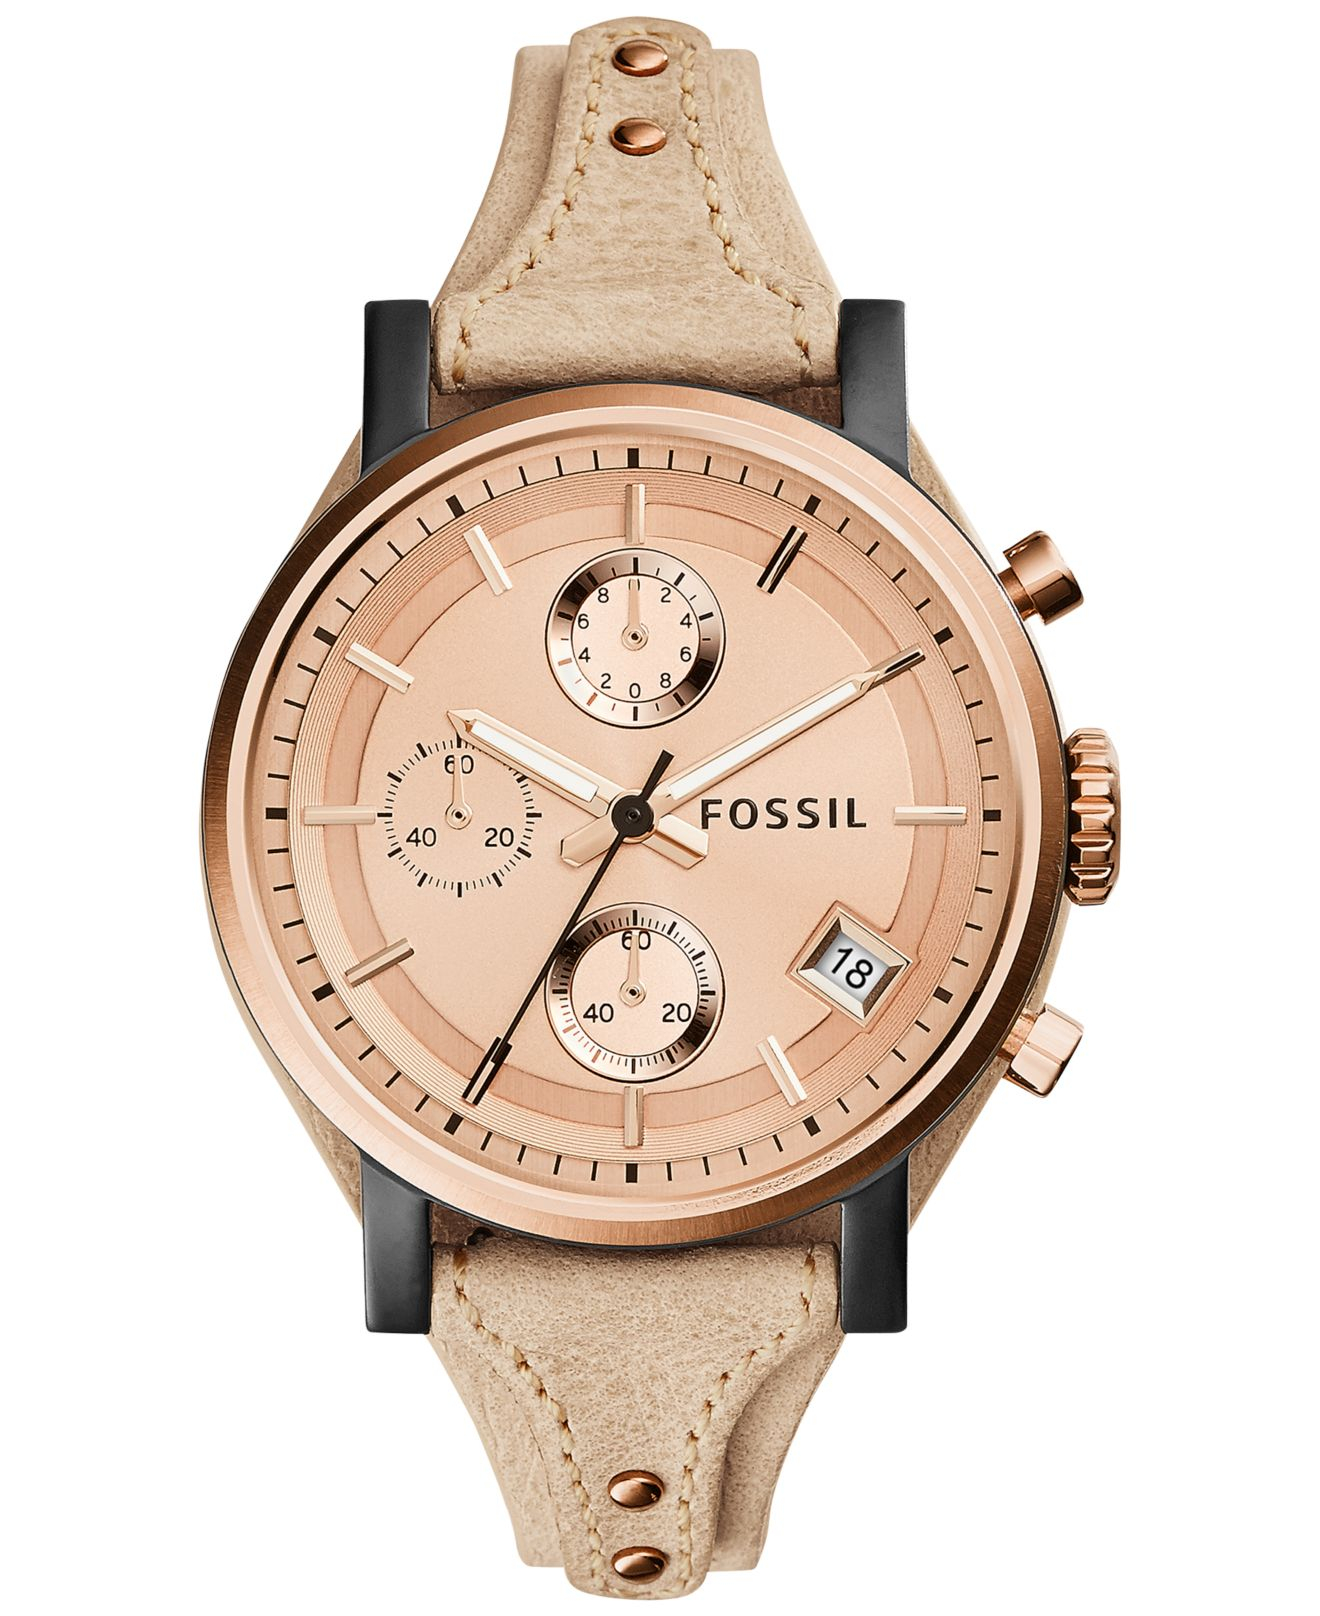 060974b1553 Lyst - Fossil Women S Chronograph Original Boyfriend Sand Leather ...